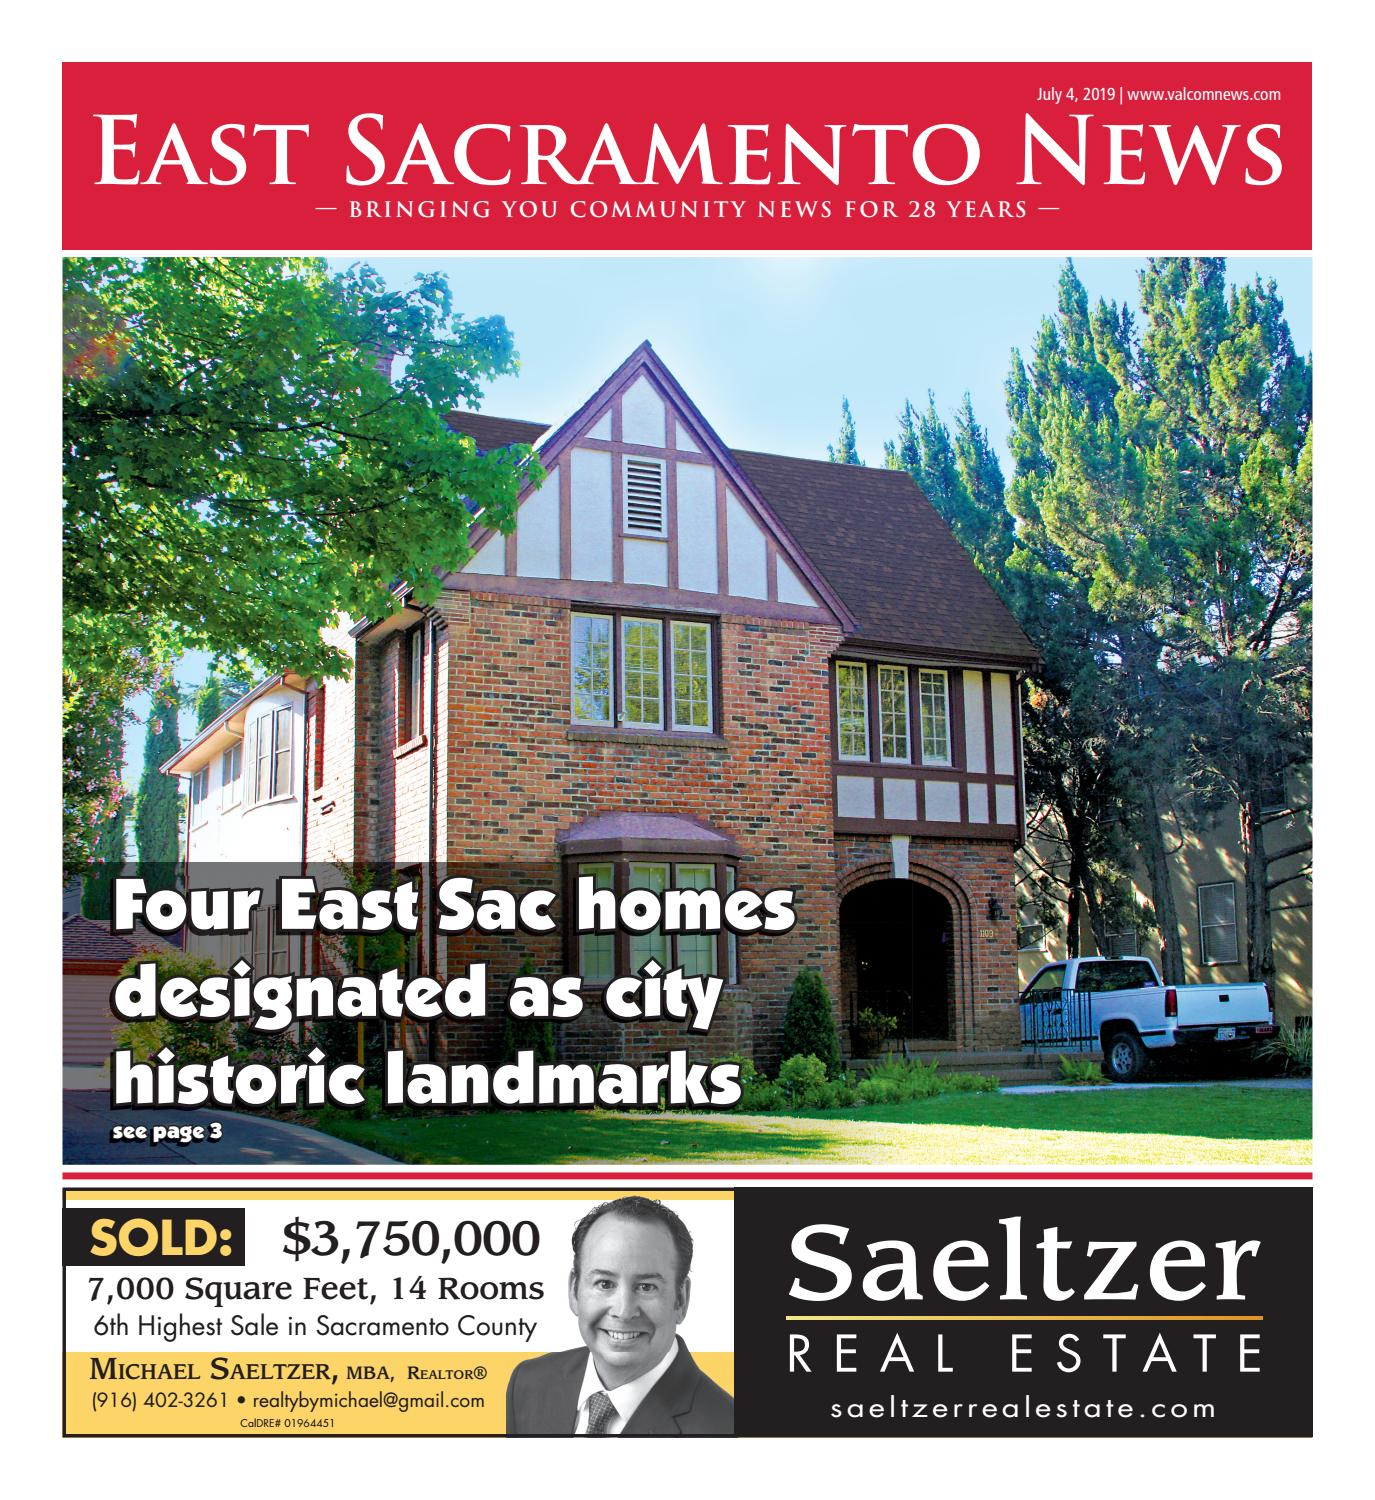 East Sacramento News by Valley Community Newspapers - issuu